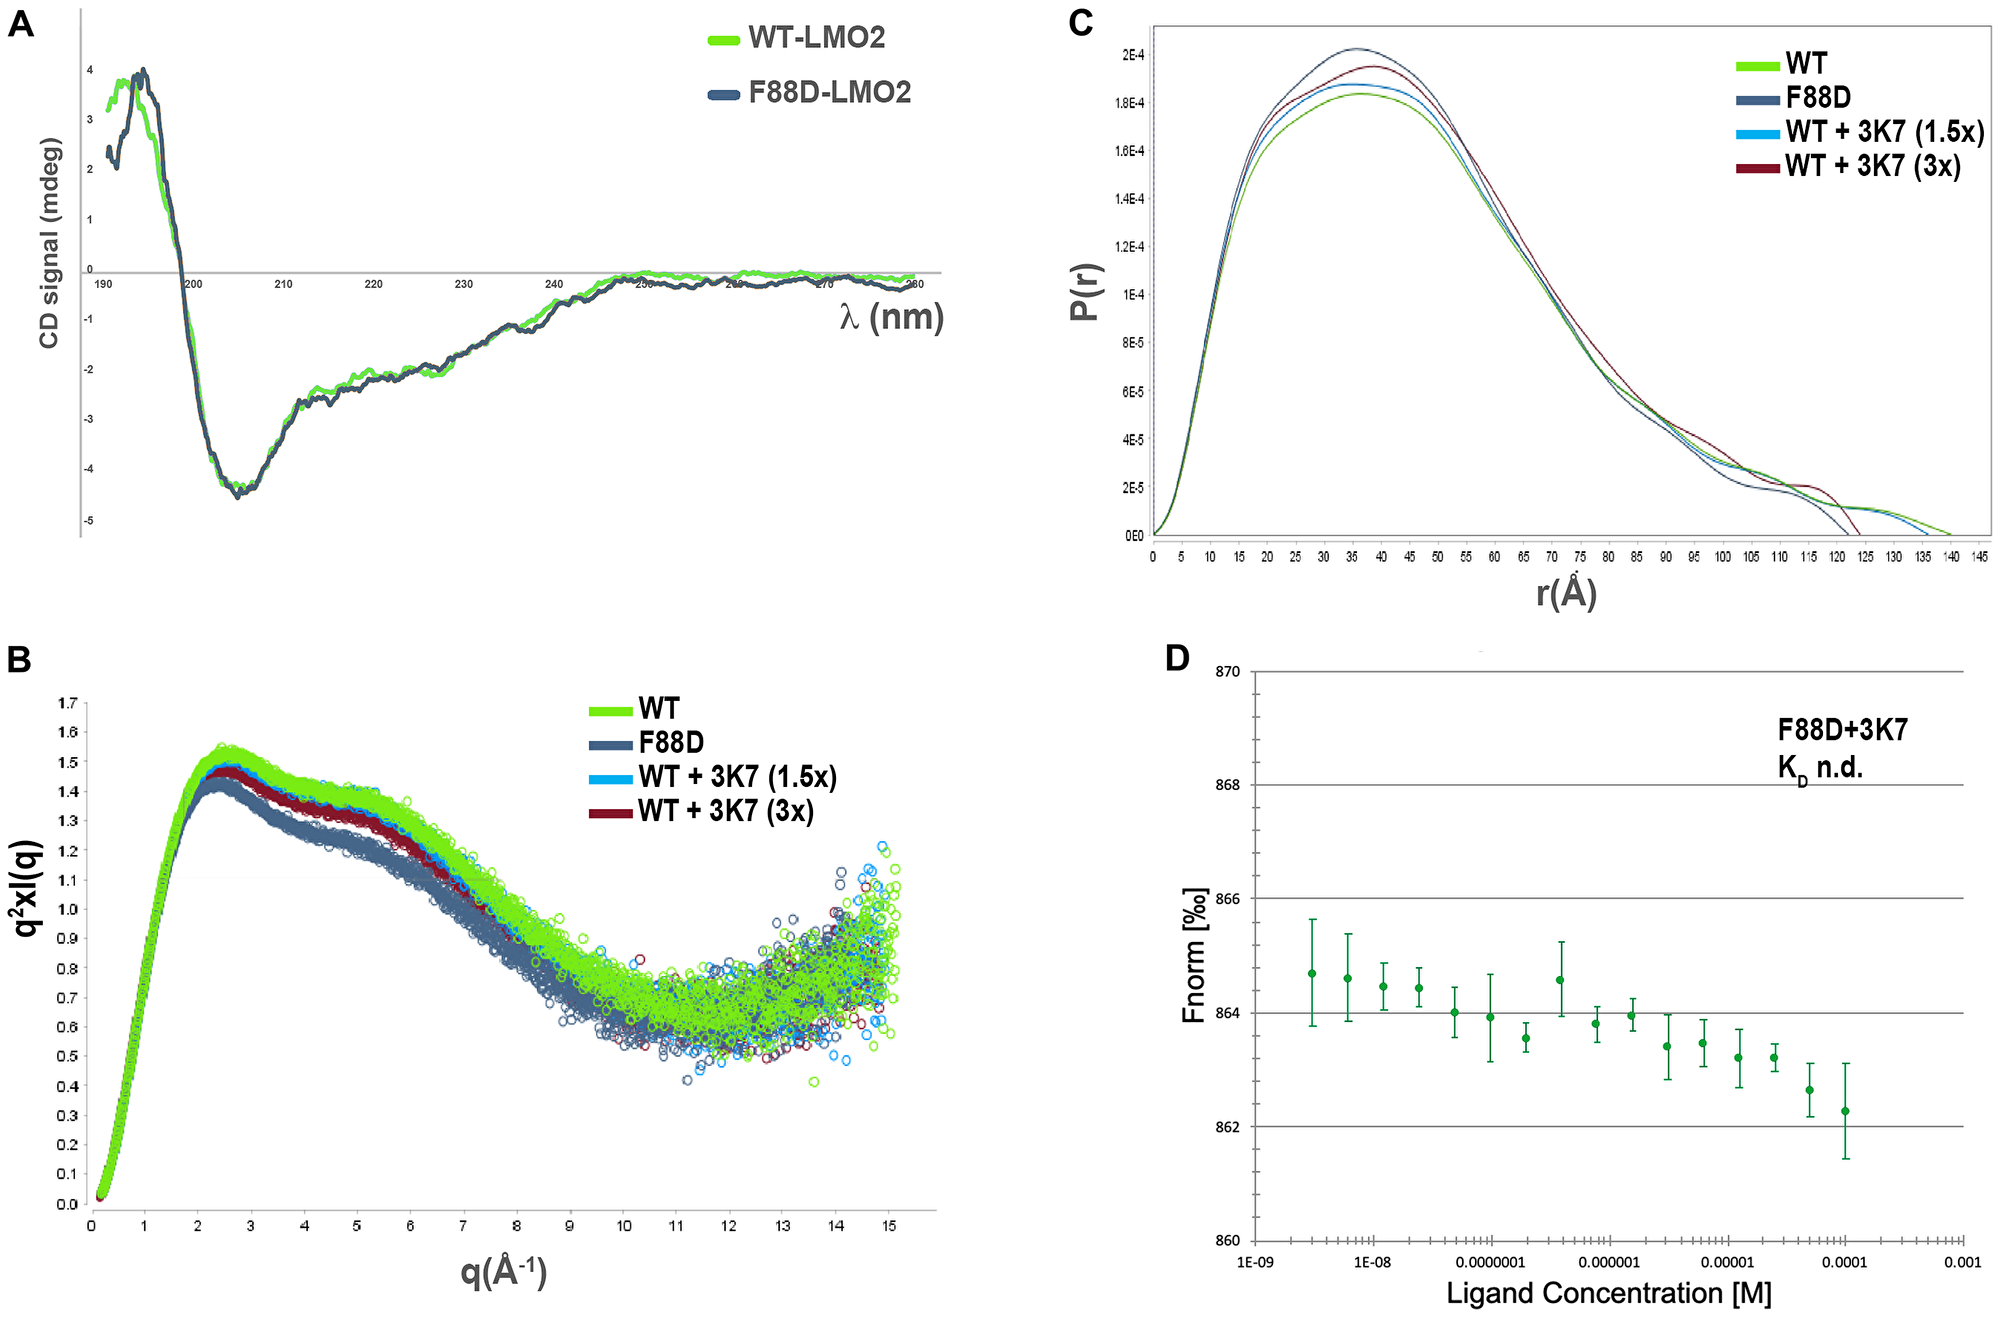 3K7 induces a change in LMO2 conformation comparable to LMO2-F88D.